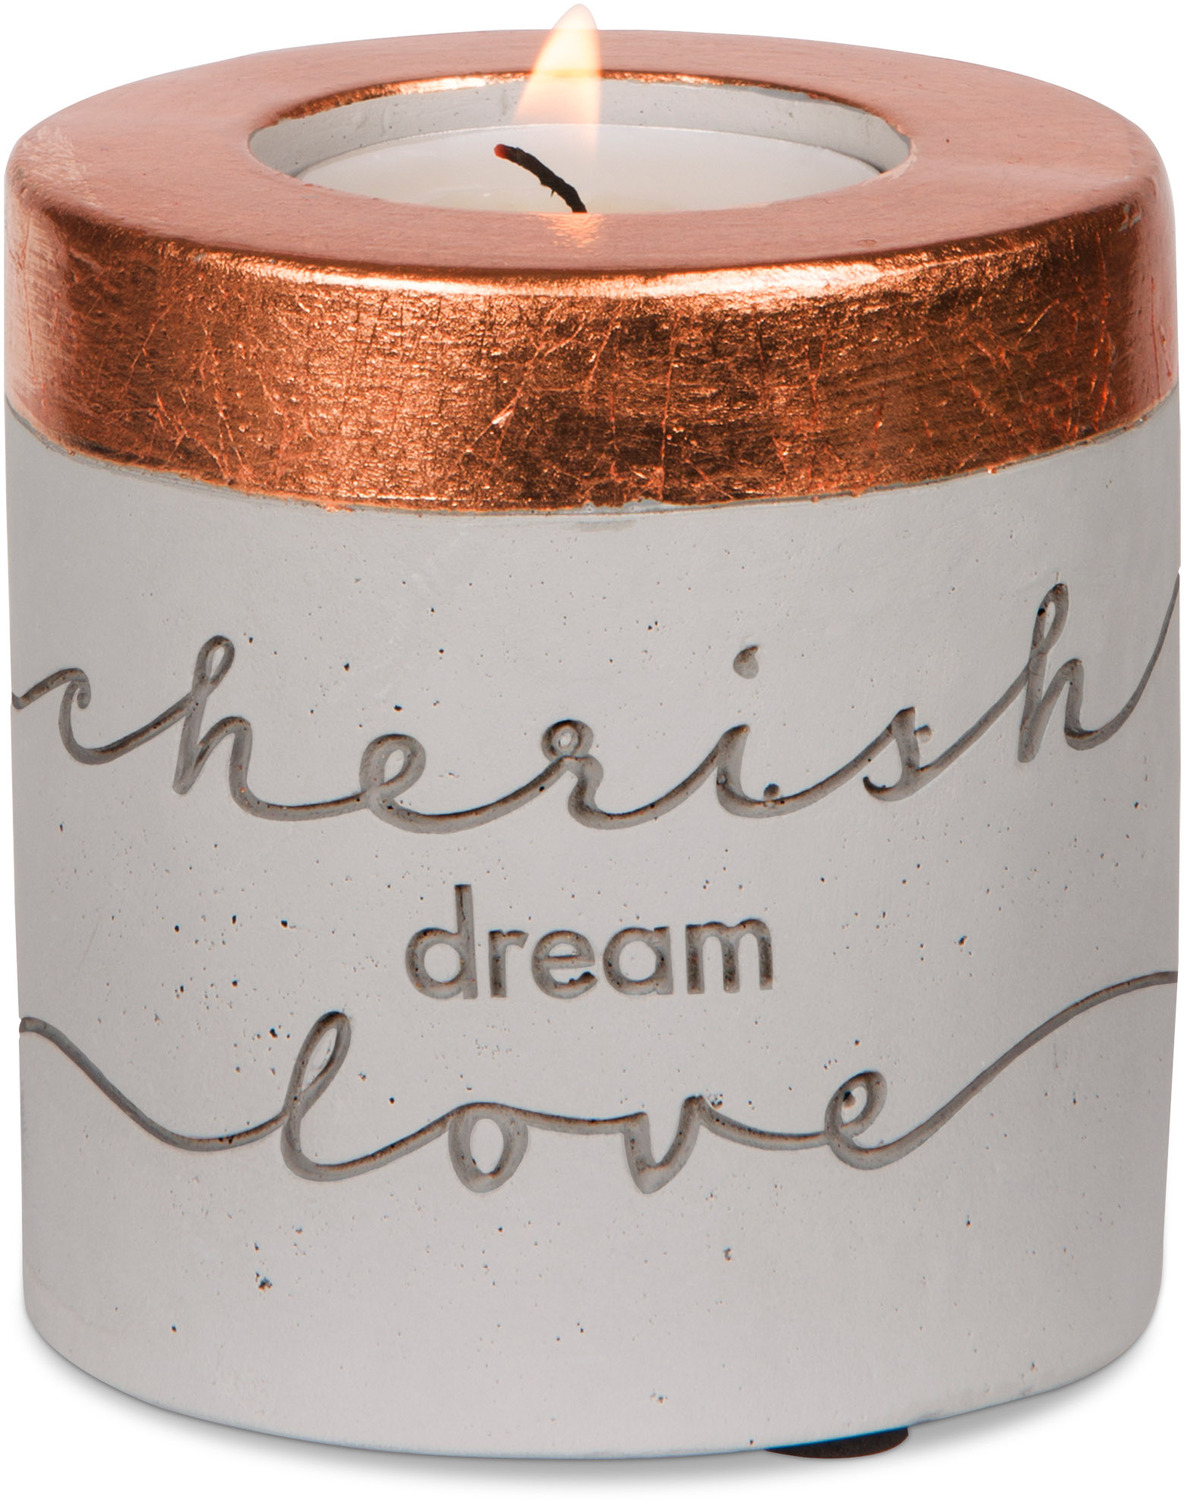 "Cherish, Dream, Love by Sweet Concrete - Cherish, Dream, Love - 3"" x 3"" Cement Candle Holder"